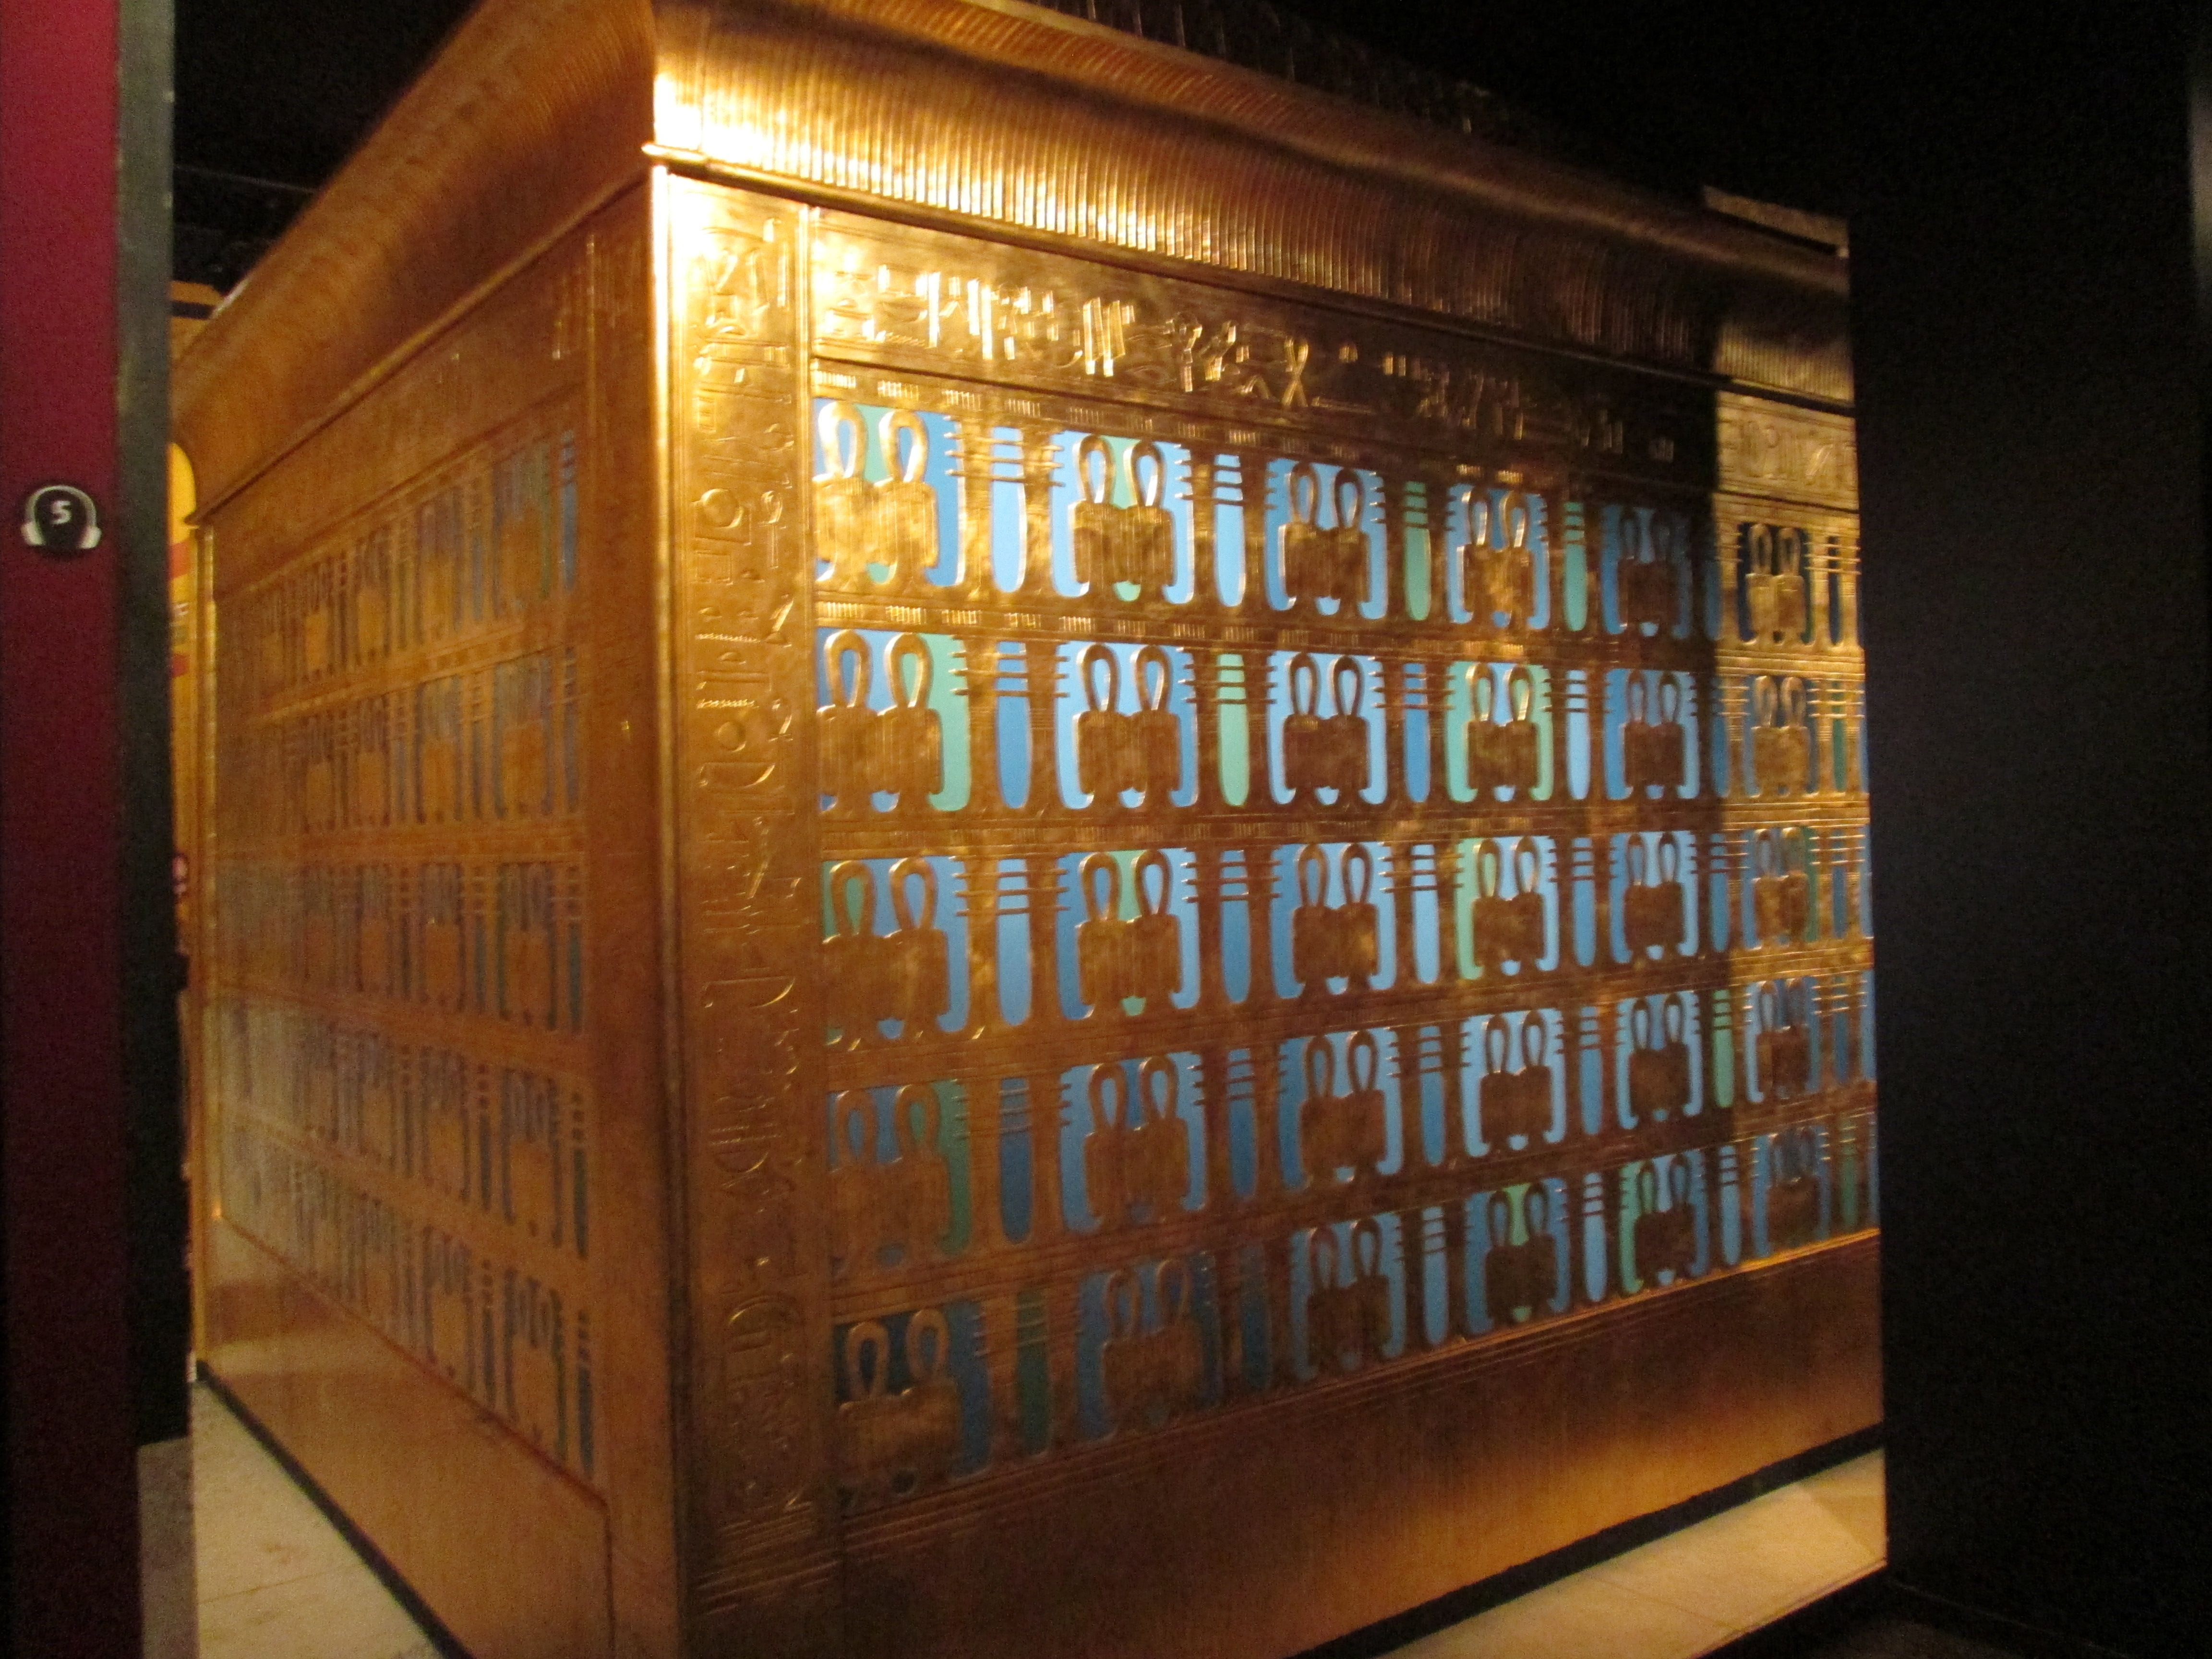 The Outermost Golden Shrine Holding King Tut S Coffin At